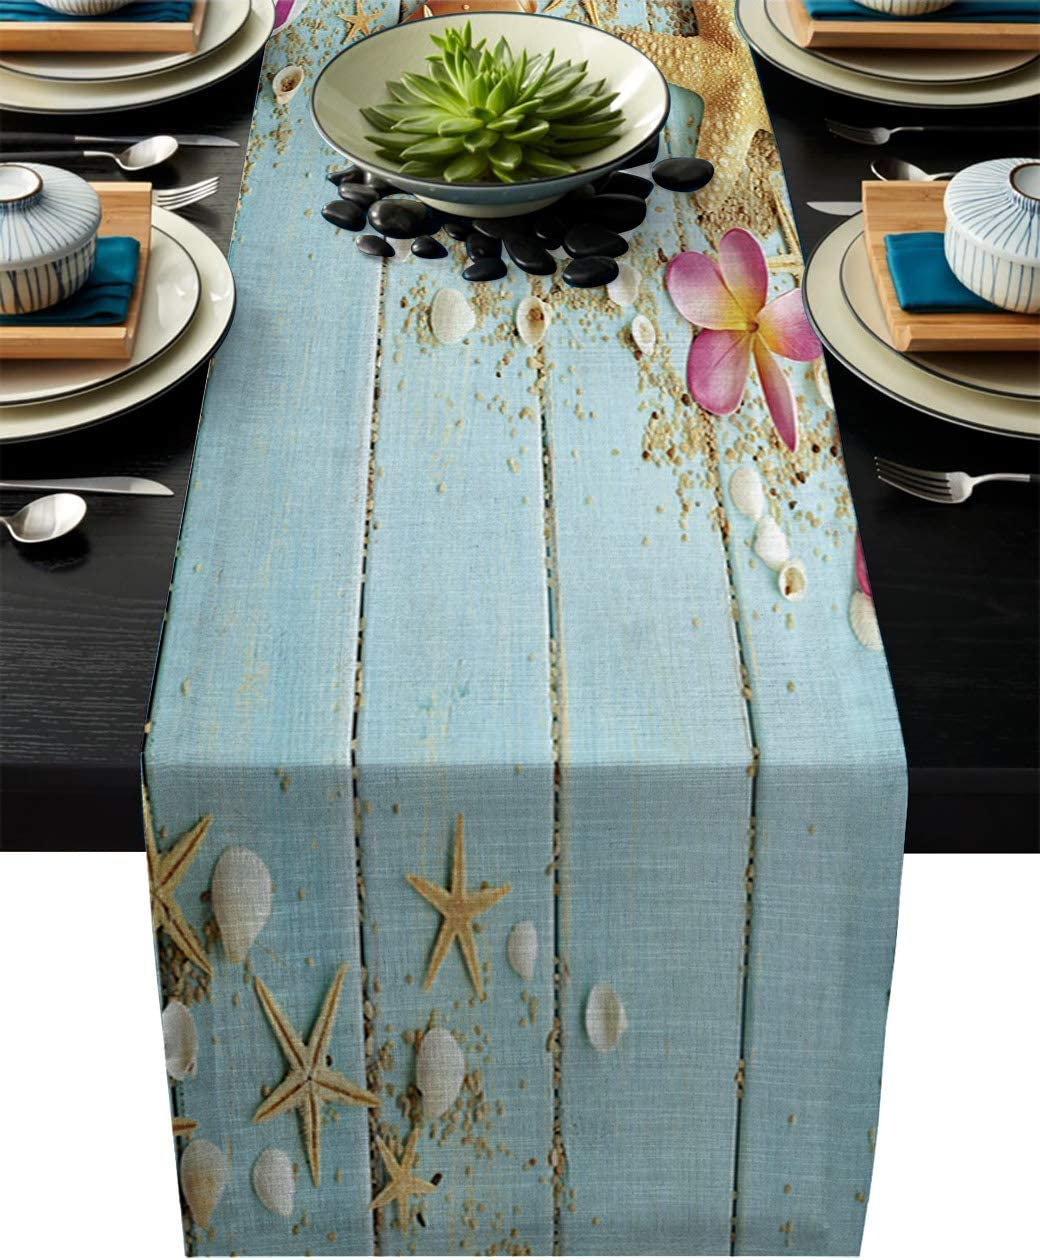 Greeeen Linen Burlap Table Runner, Starfish Kitchen Table Runners for Family Dinner, Banquet, Parties and Celebrations, Beach Theme Seashells Table Decor, 16 x 72 inch